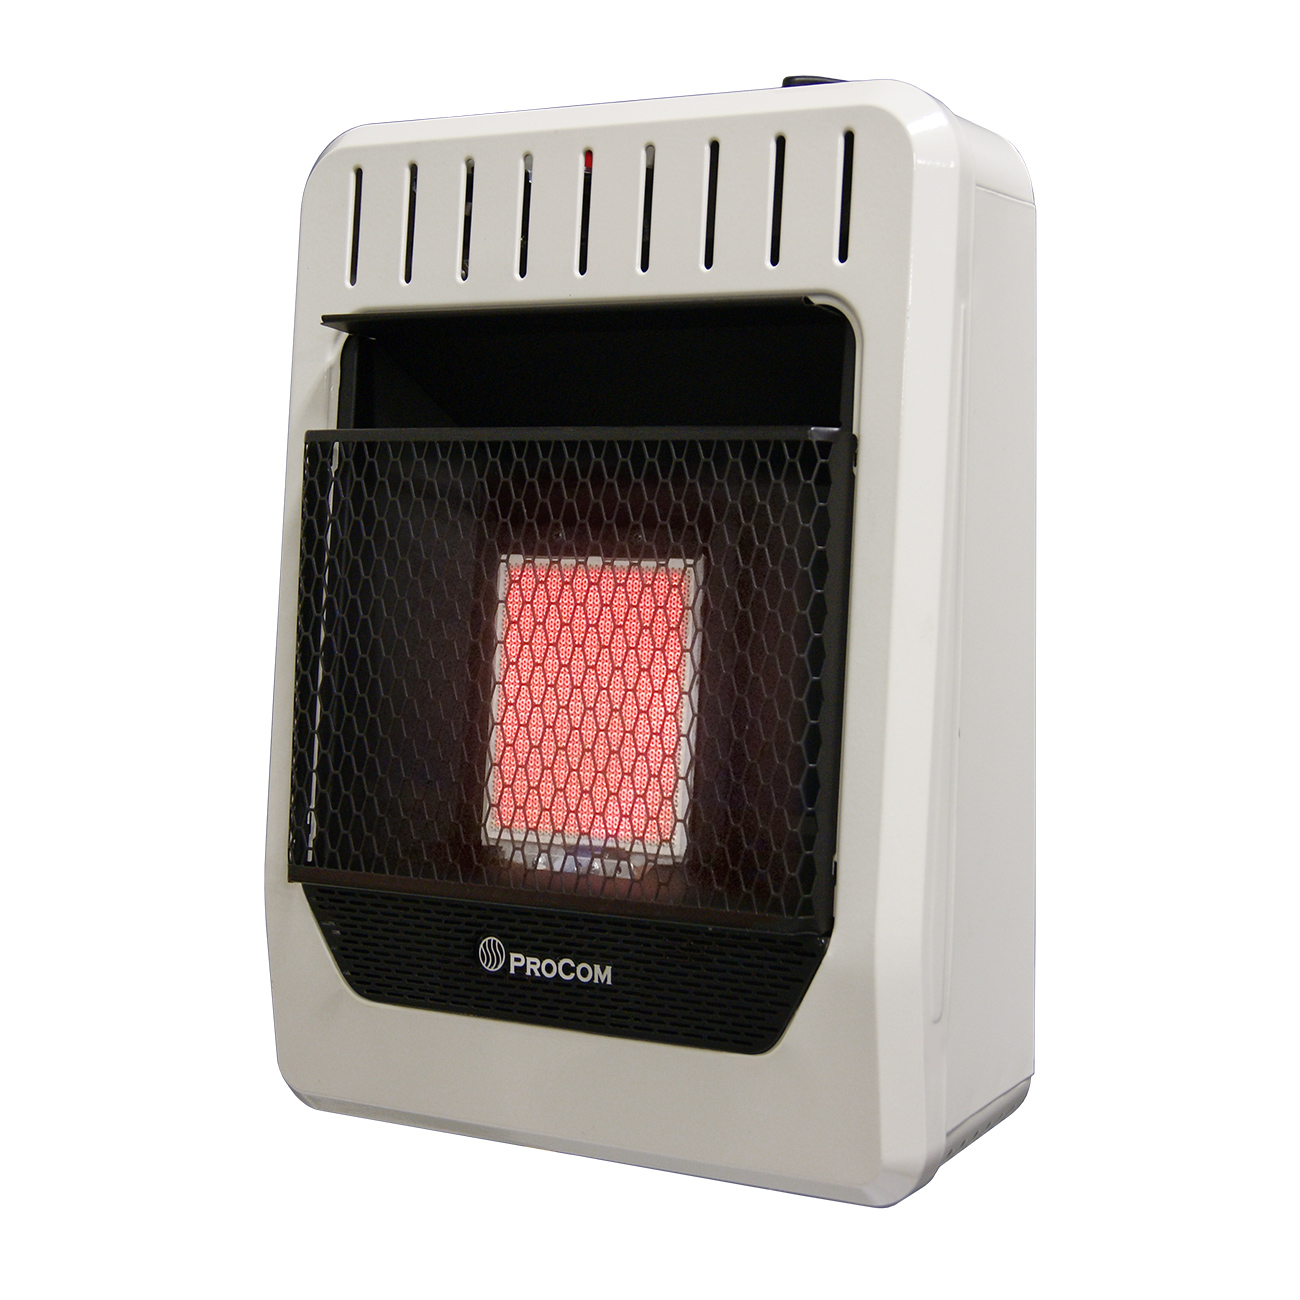 Ventless propane gas heater manual control wall heater for Natural gas heating options